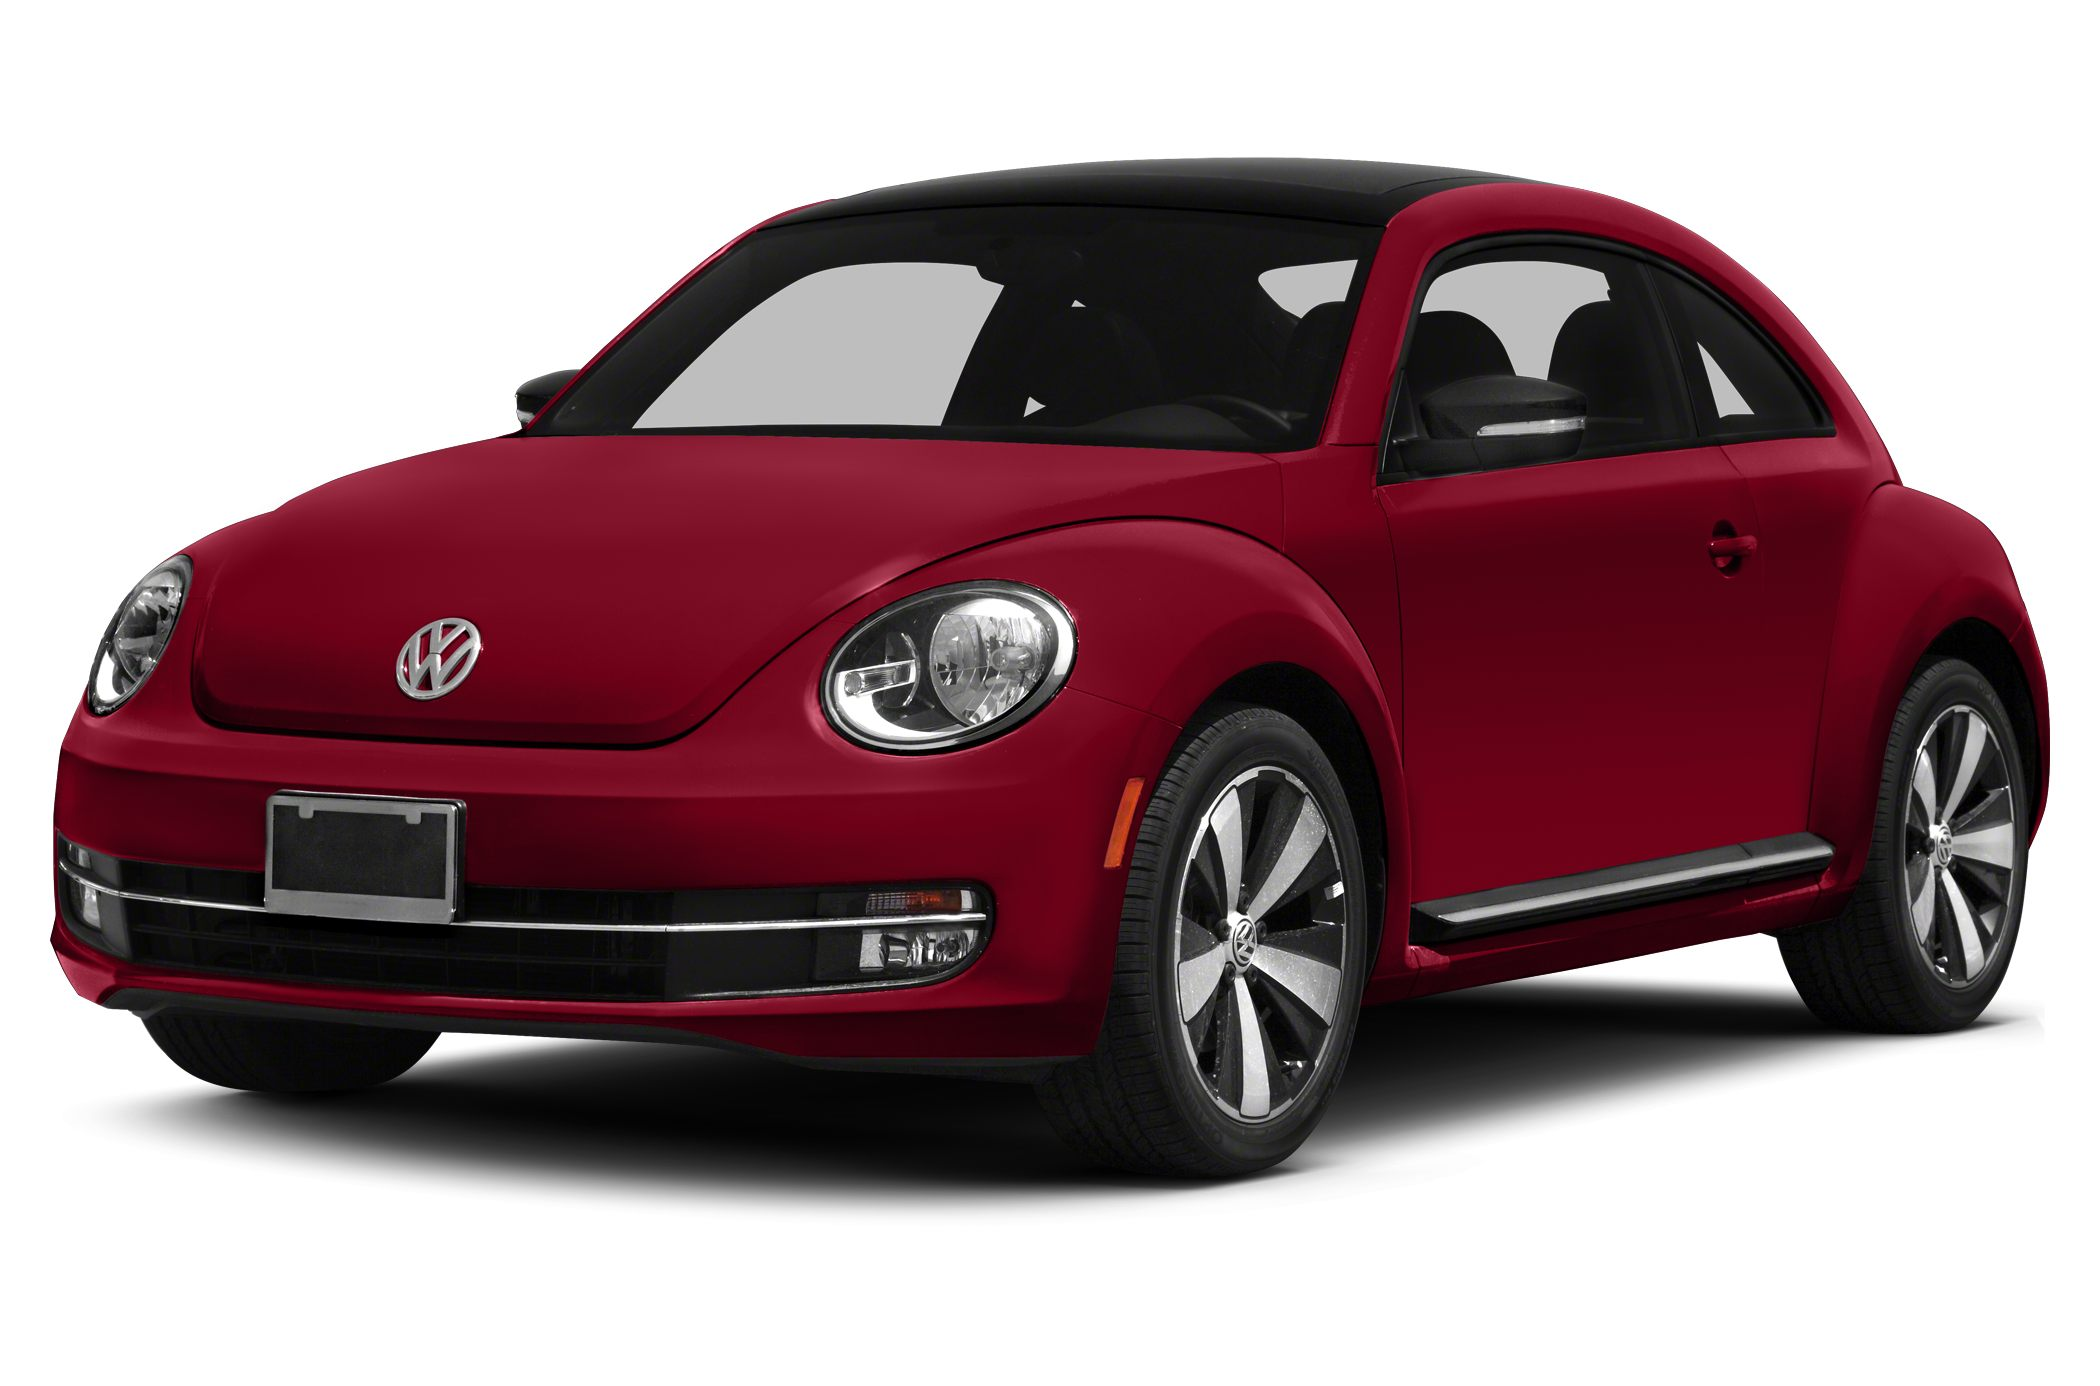 2015 Volkswagen Beetle 2.0L TDI Hatchback for sale in Knoxville for $26,800 with 2 miles.